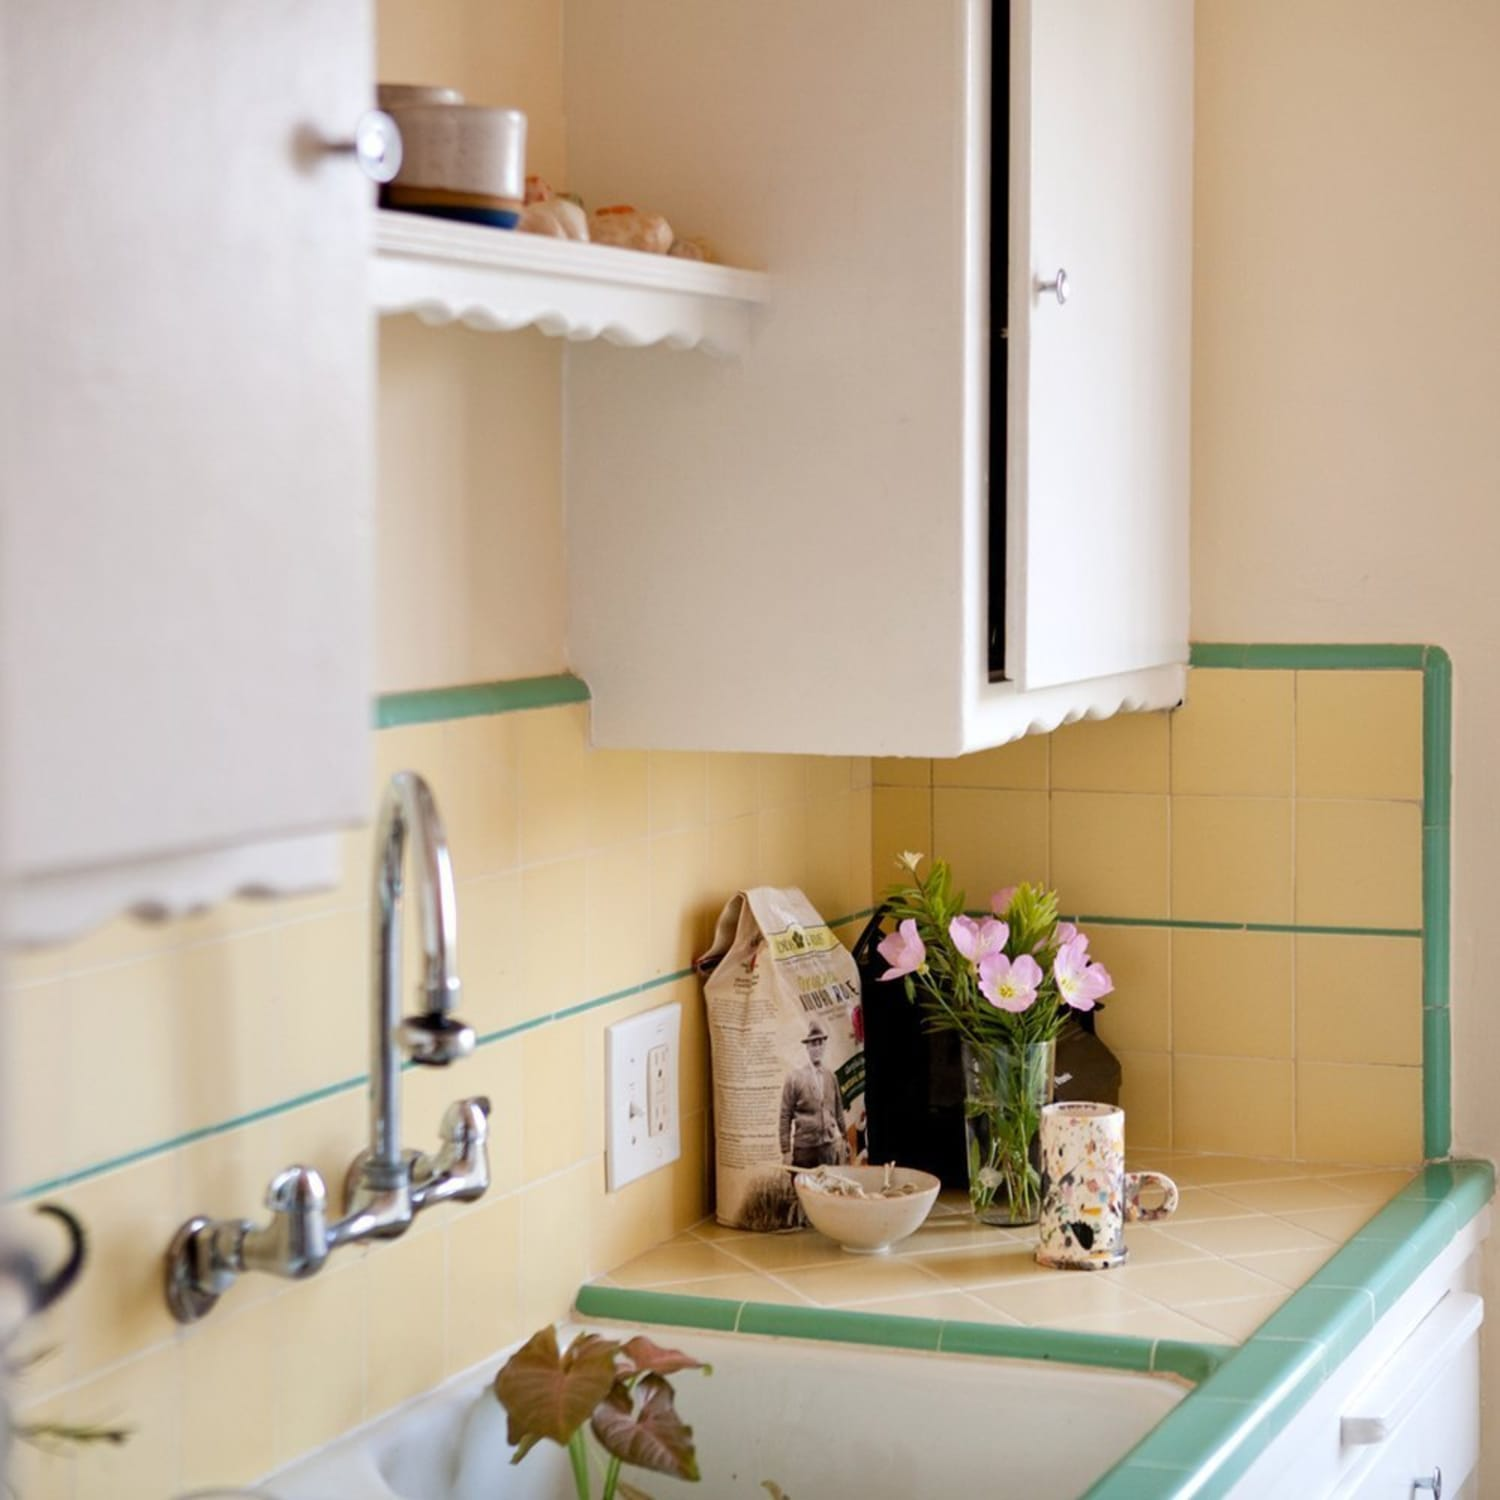 Kitchen Cabinets Without Hardware: 6 Cabinet Hardware Tips From The Experts